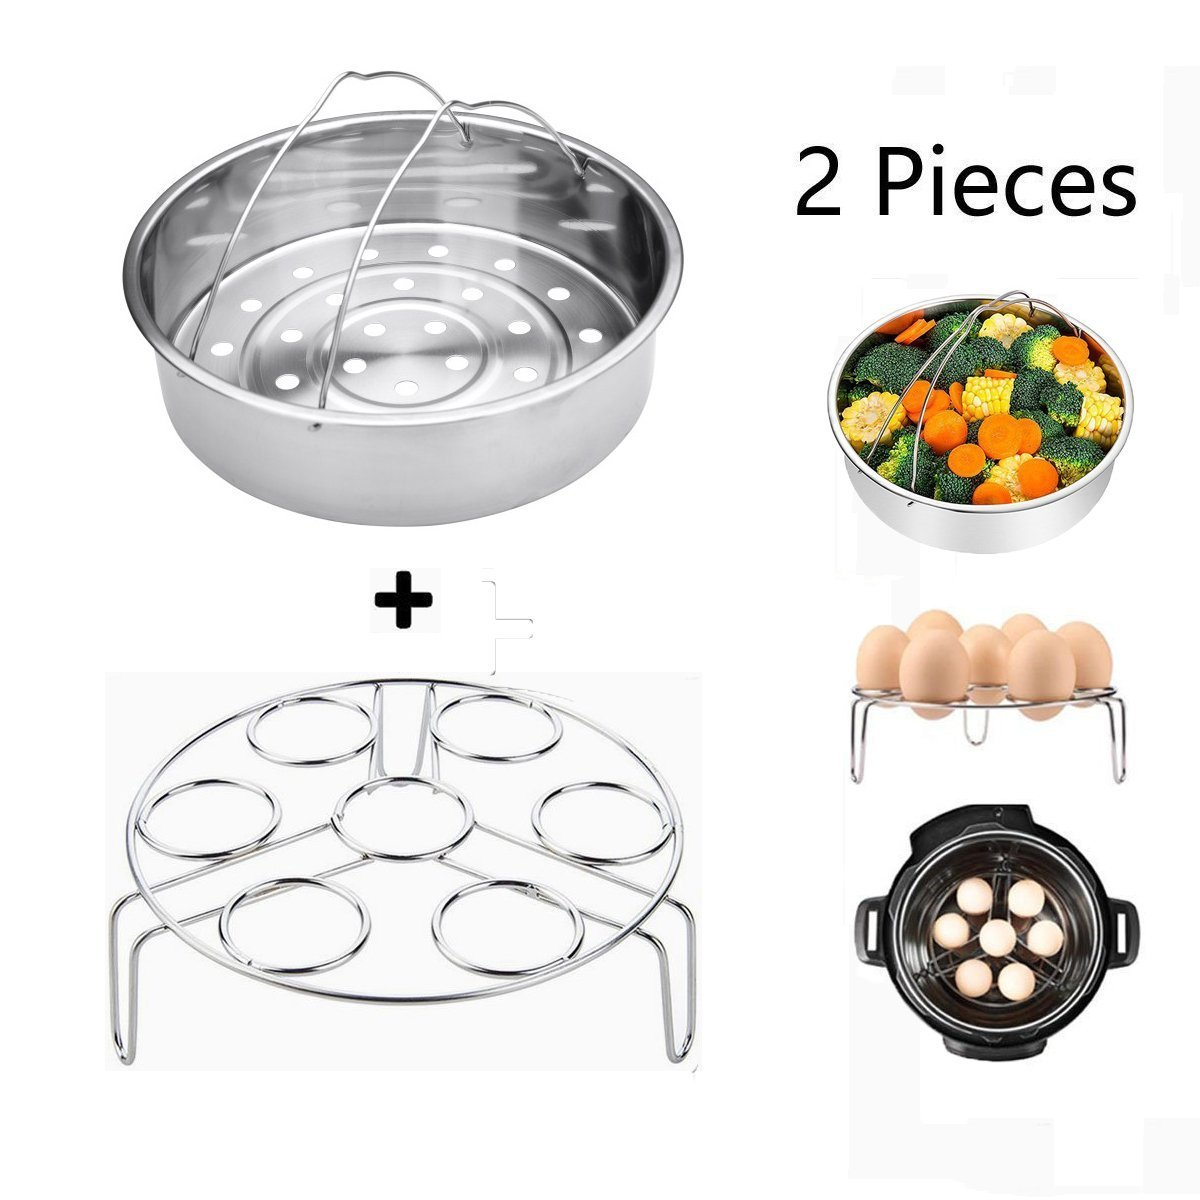 Lakatay Steamer Basket With Egg Steamer Rack for Instant Pot Accessories and 5/6/8 qt Pressure Cooker Stainless Steel Vegetable Steam Rack Stand Pack of 2